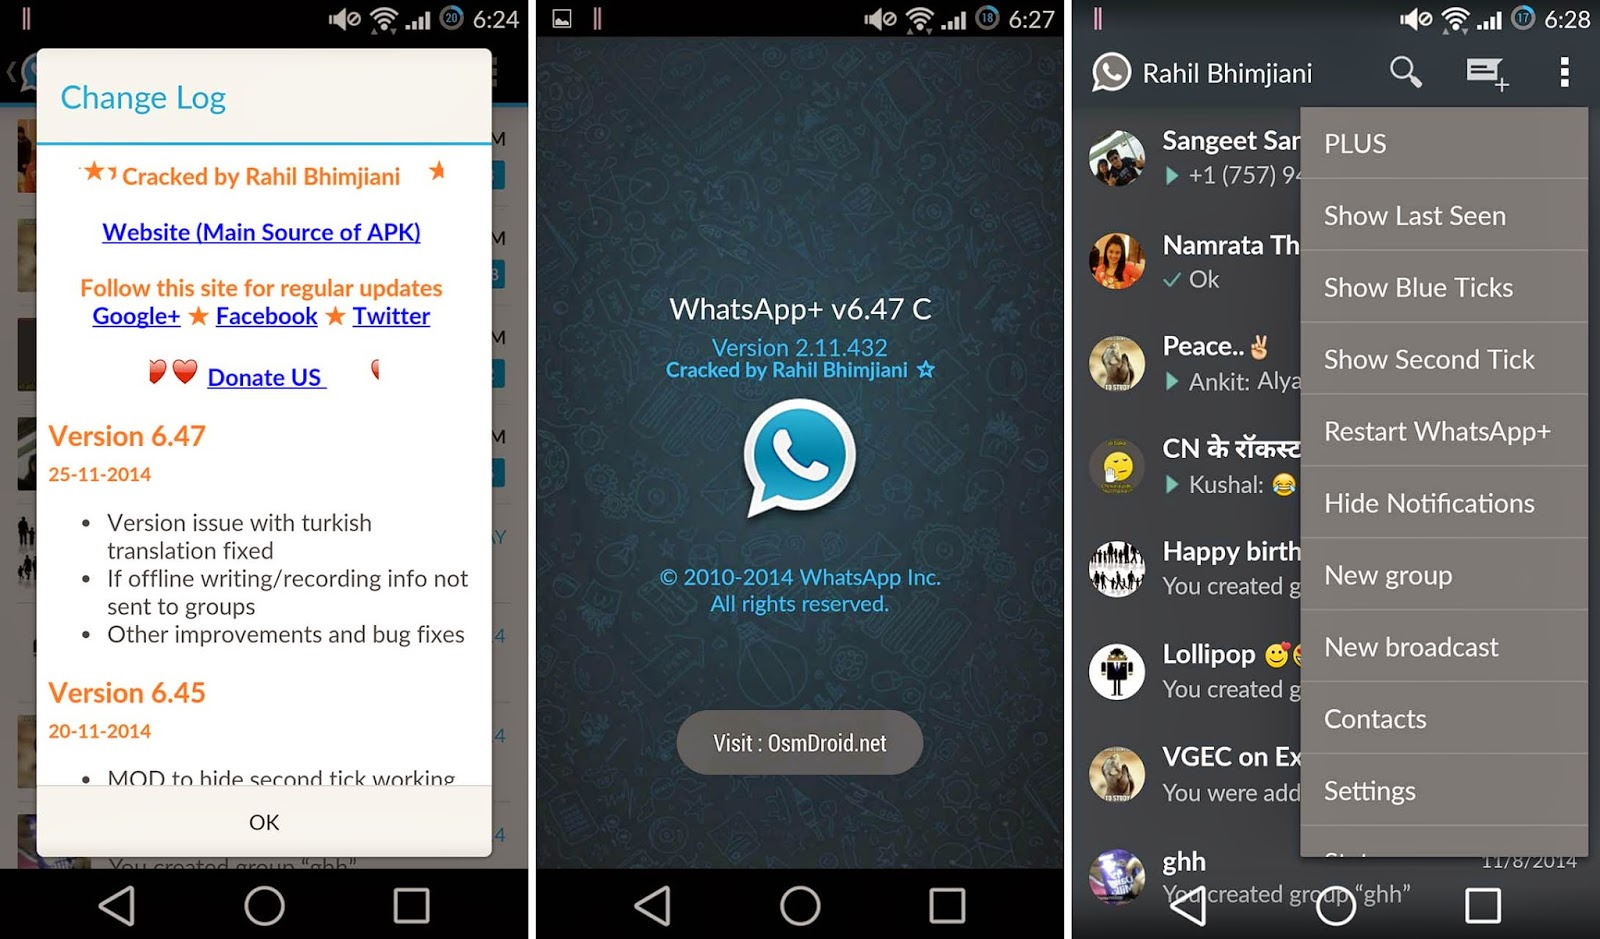 Whatsapp+ Plus v6.47C Cracked Patched Modded (Hide Last Seen Blue Double Tick Download No Root Apk)